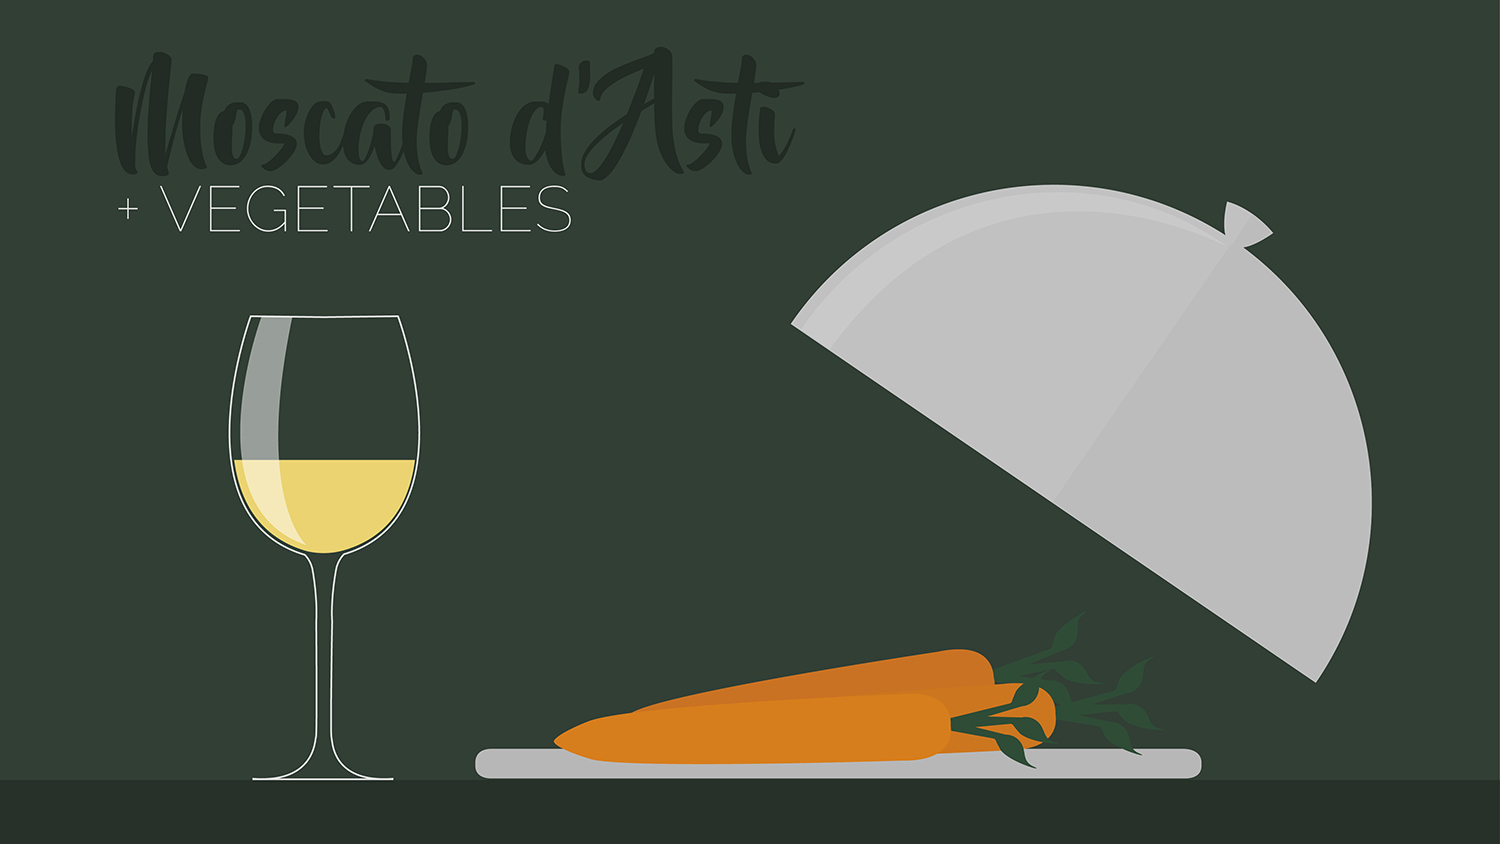 vegetables carrots and celery pair well with certain moscato wine